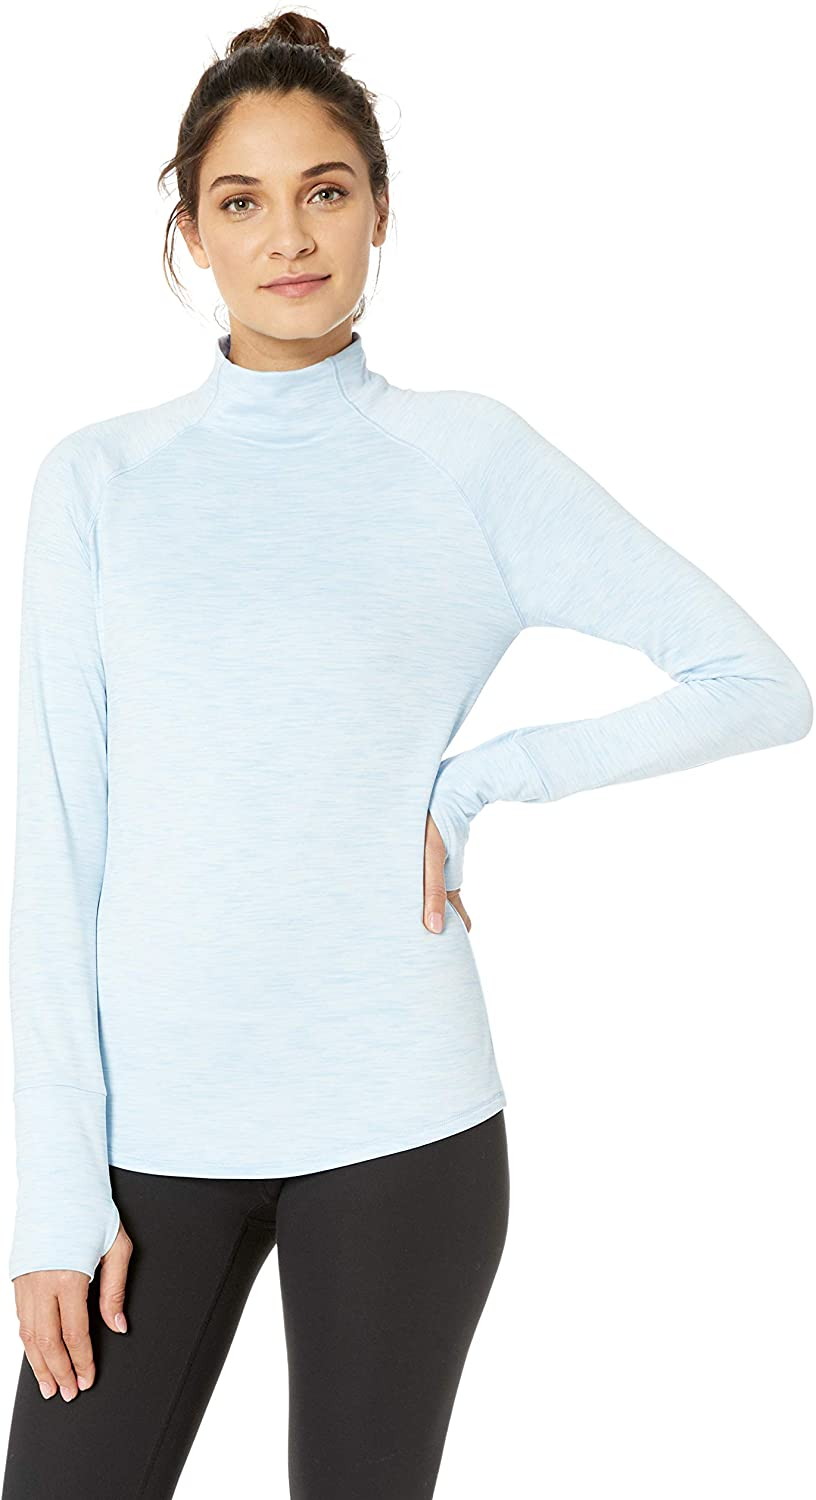 DHgate Brand - Core 10 Women's (XS-3X) Cozy Fitted Mock Neck Workout Long Sleeve Top